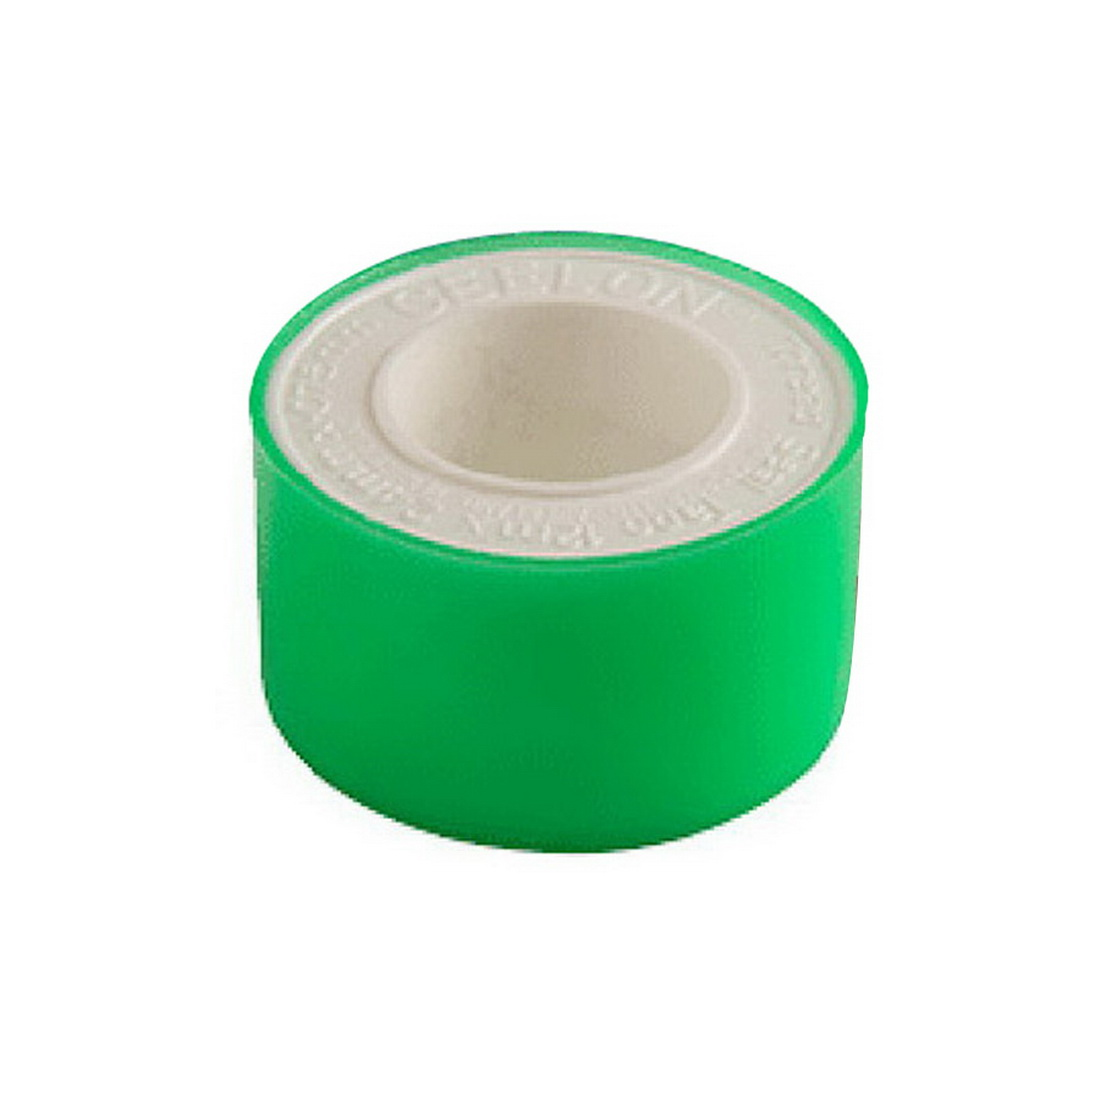 Shuk Engineering Ceelon Thread Sealing Tape 24mm x 12m PTFE Green CEL24